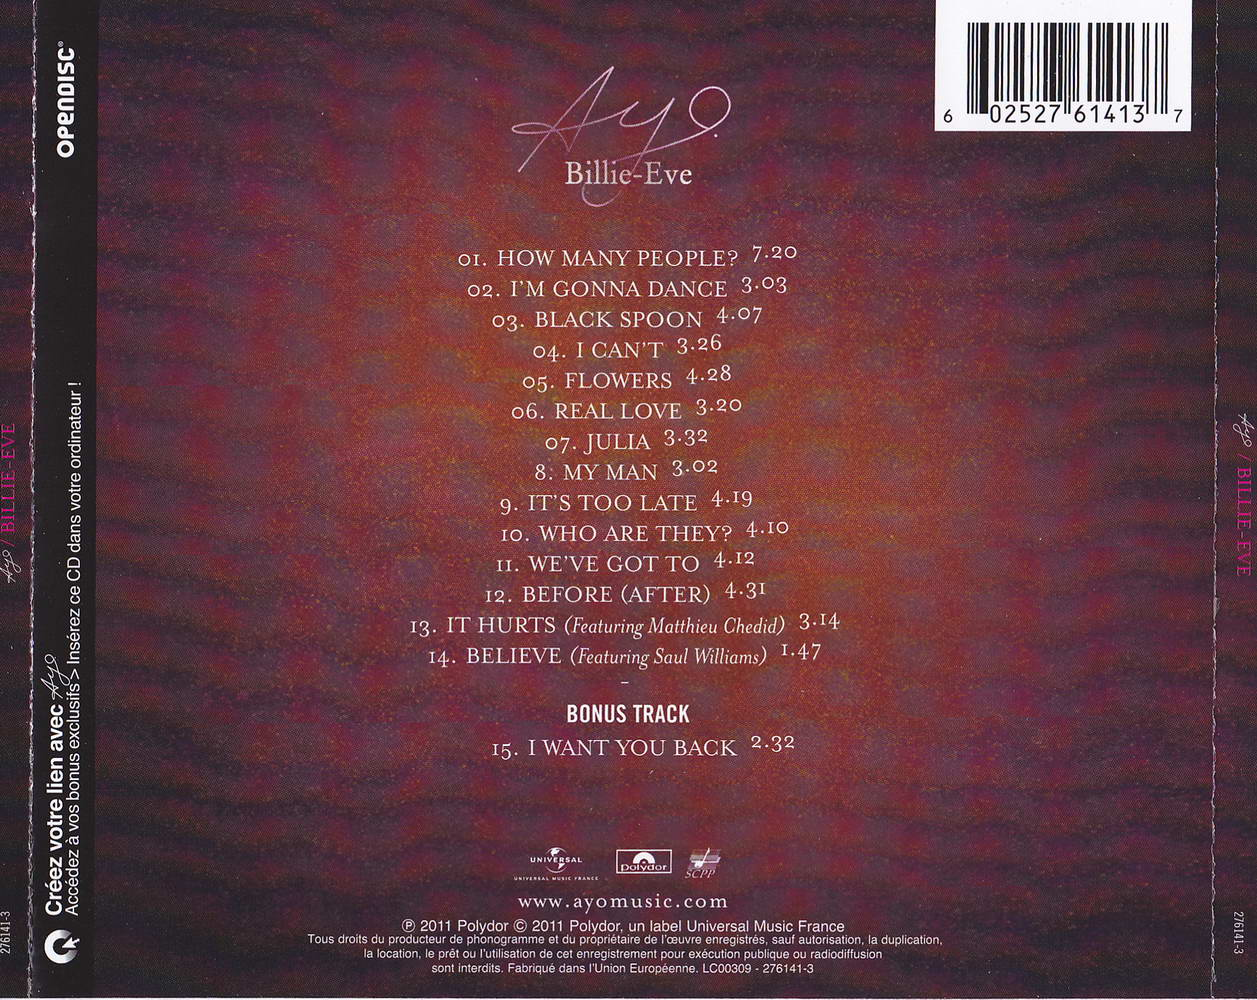 billie-eve-album-back.jpg